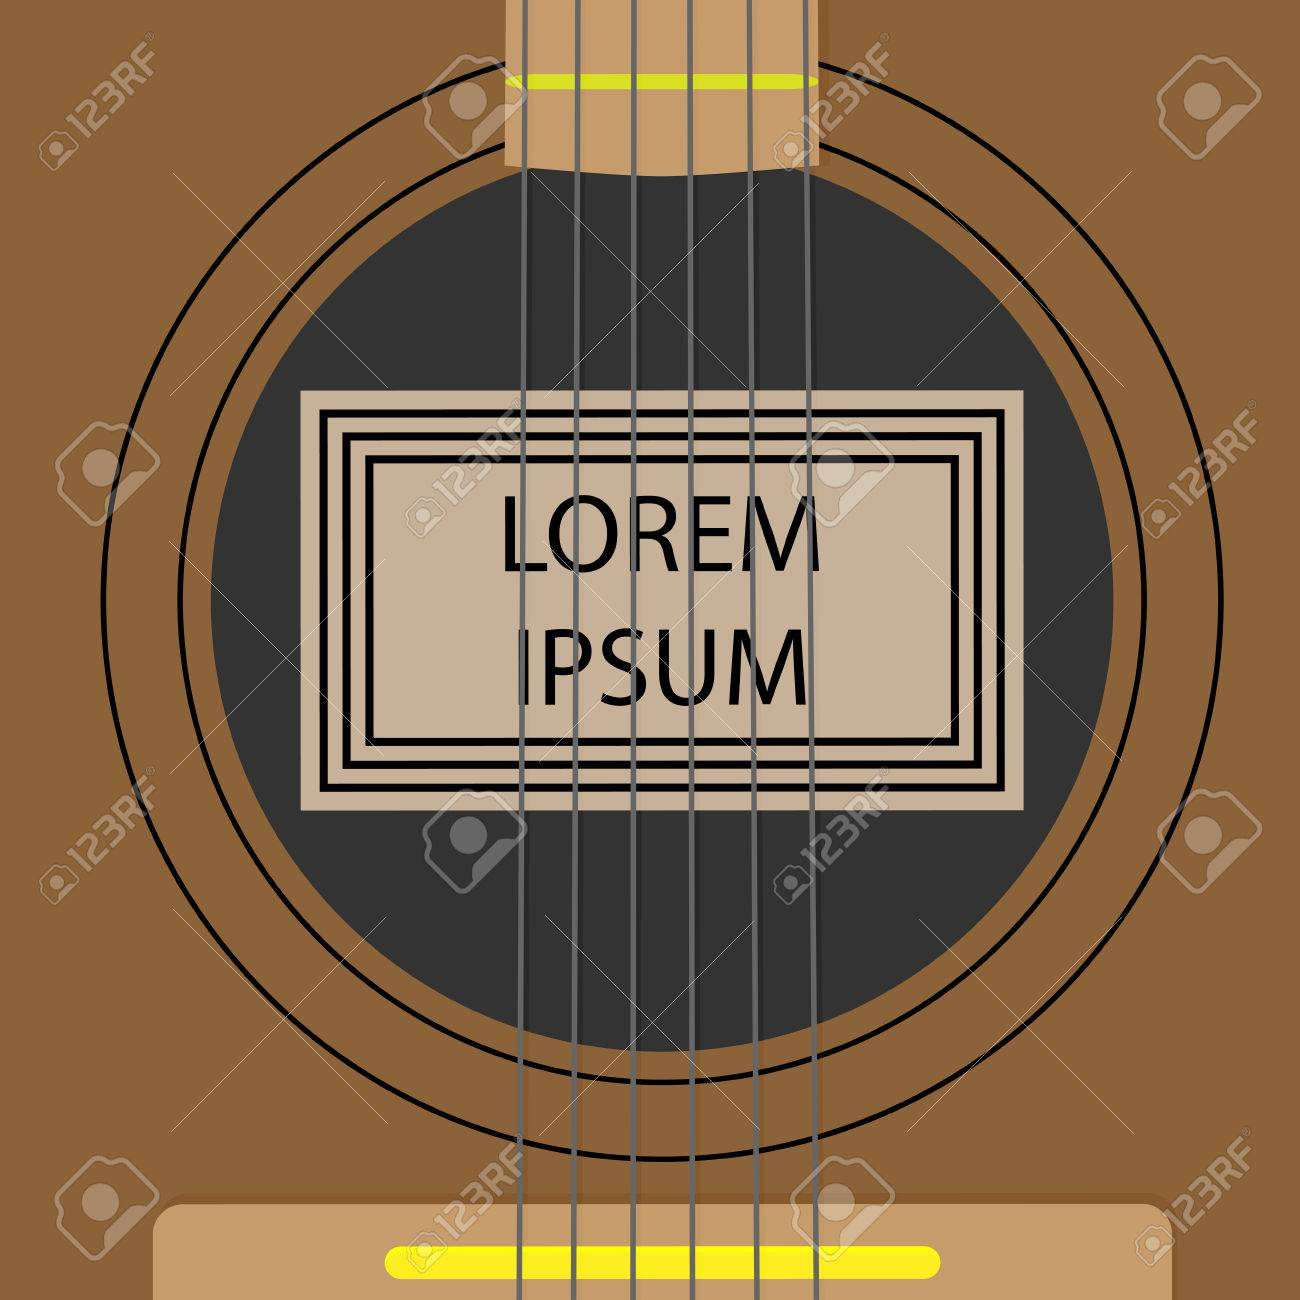 Resonator sounding board template banner. Musical sound instrument guitar, string acoustic. Vector art abstract unusual fashion illustration - 50090926